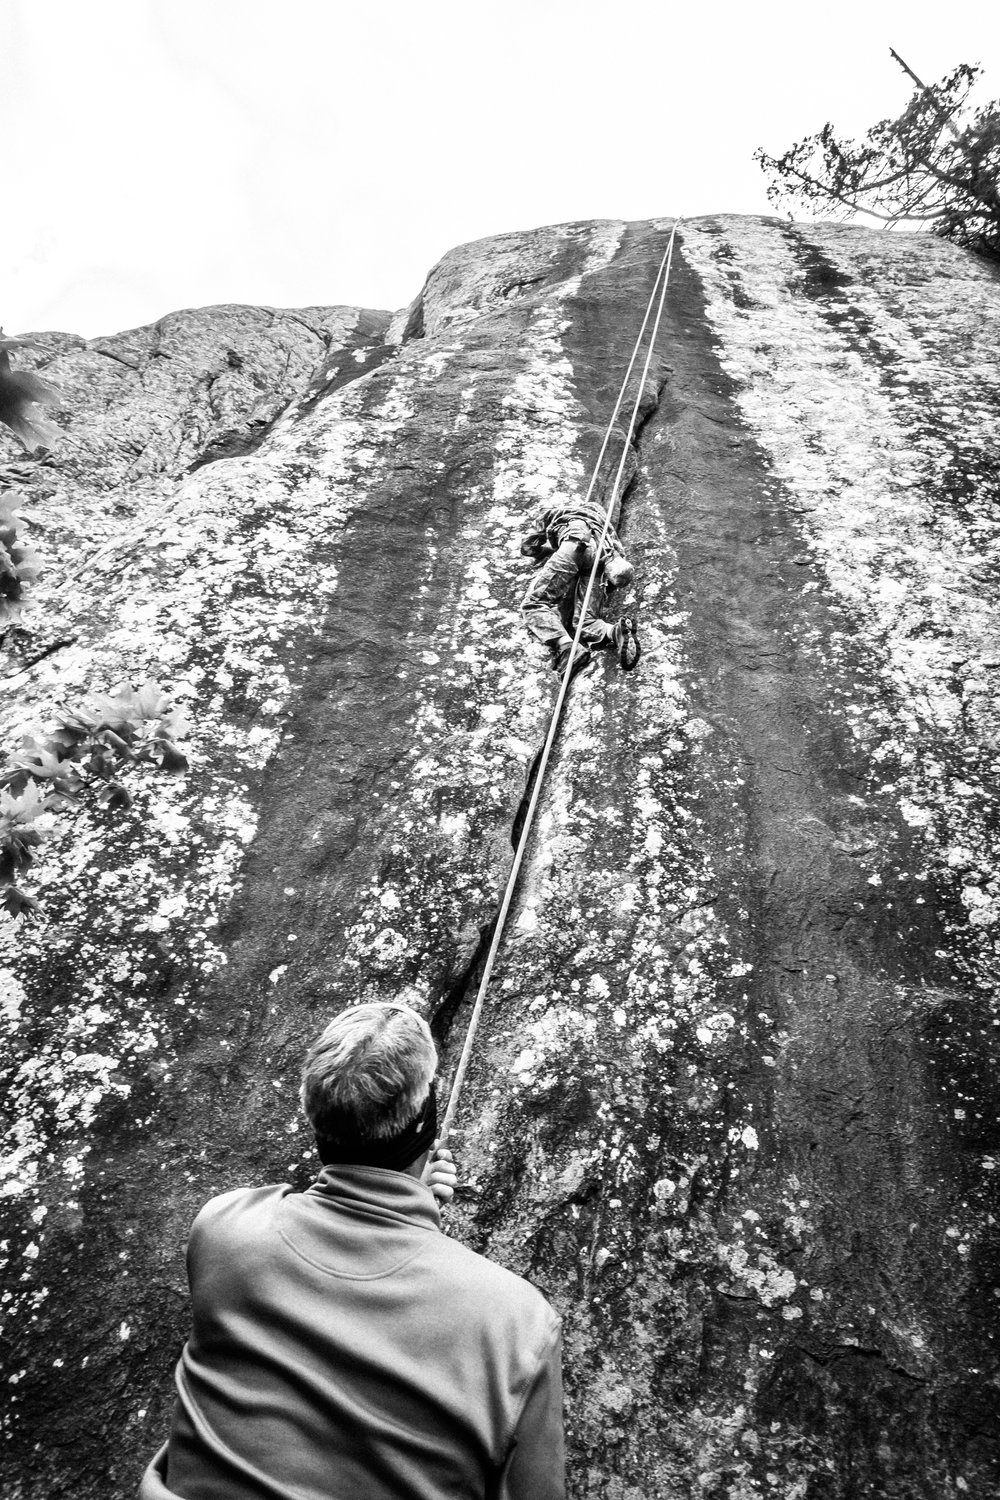 4-22-17 Rock Climbing black & white-17.jpg